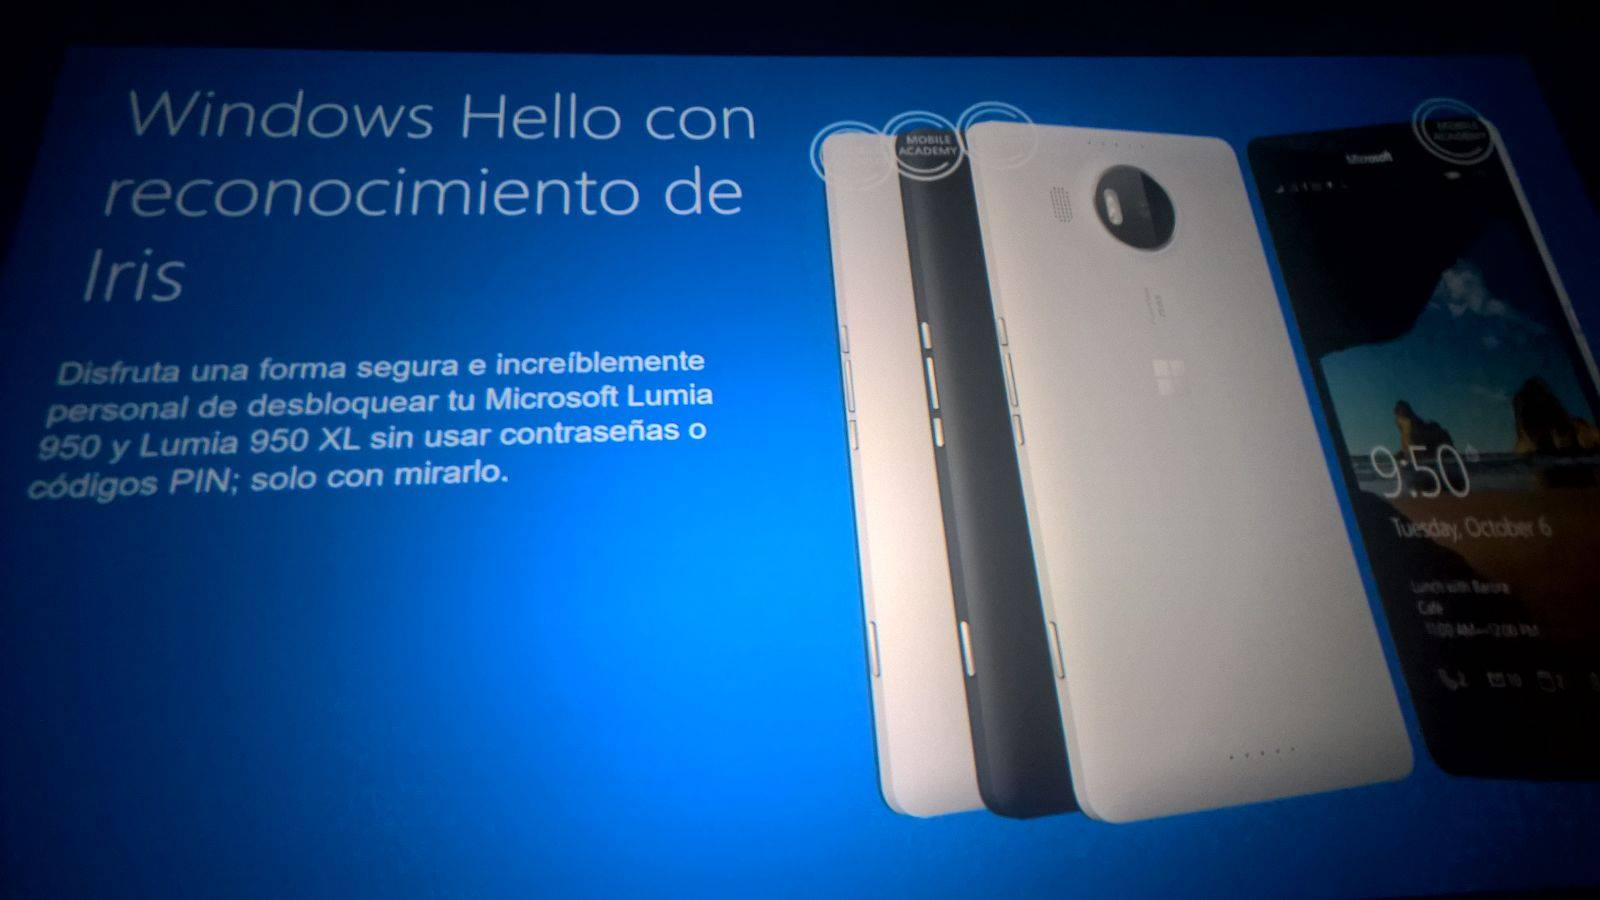 New pictures of the Lumia 950 XL and Lumia 950 leaked, confirms rumored specs 1